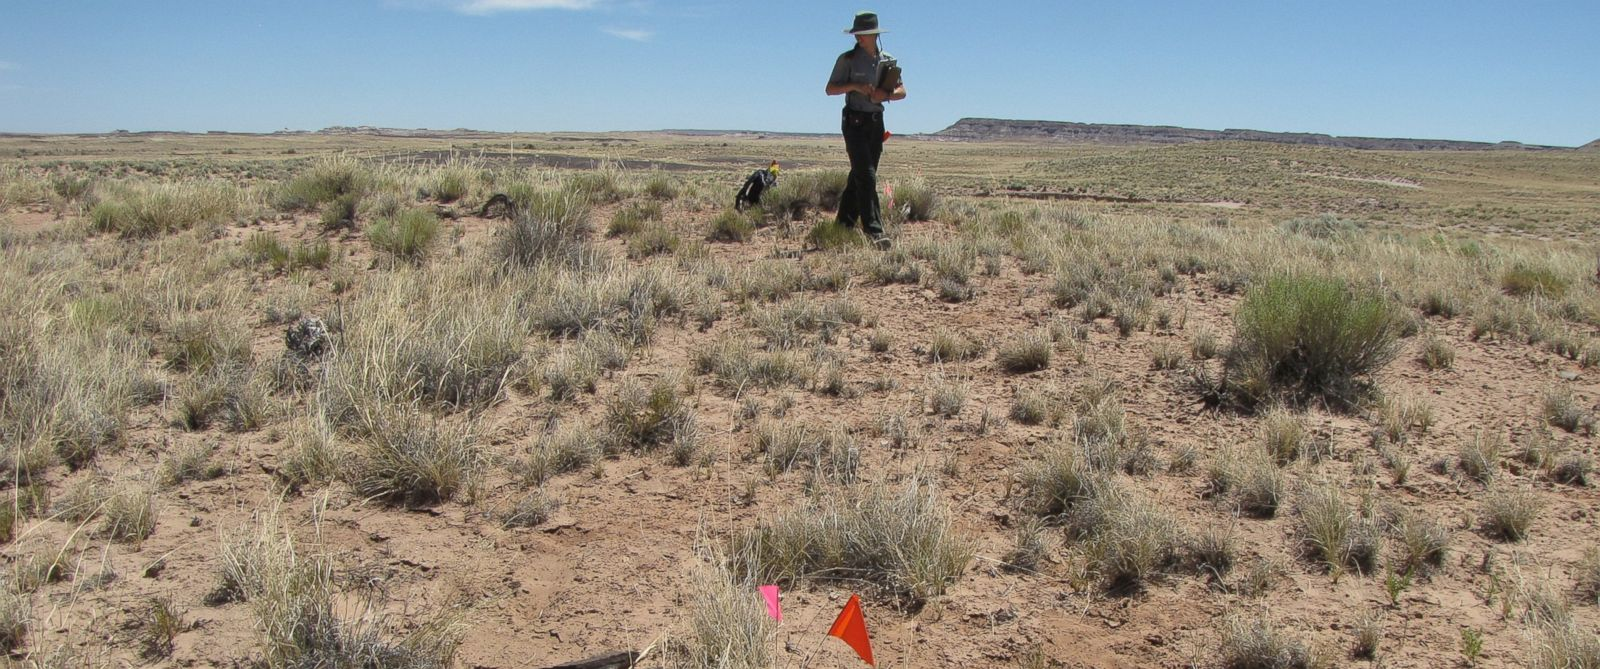 PHOTO: Archaeologists surveying land acquired by Petrified Forest National Park have found traces of two ancient villages. The flags mark a site where pottery was found.